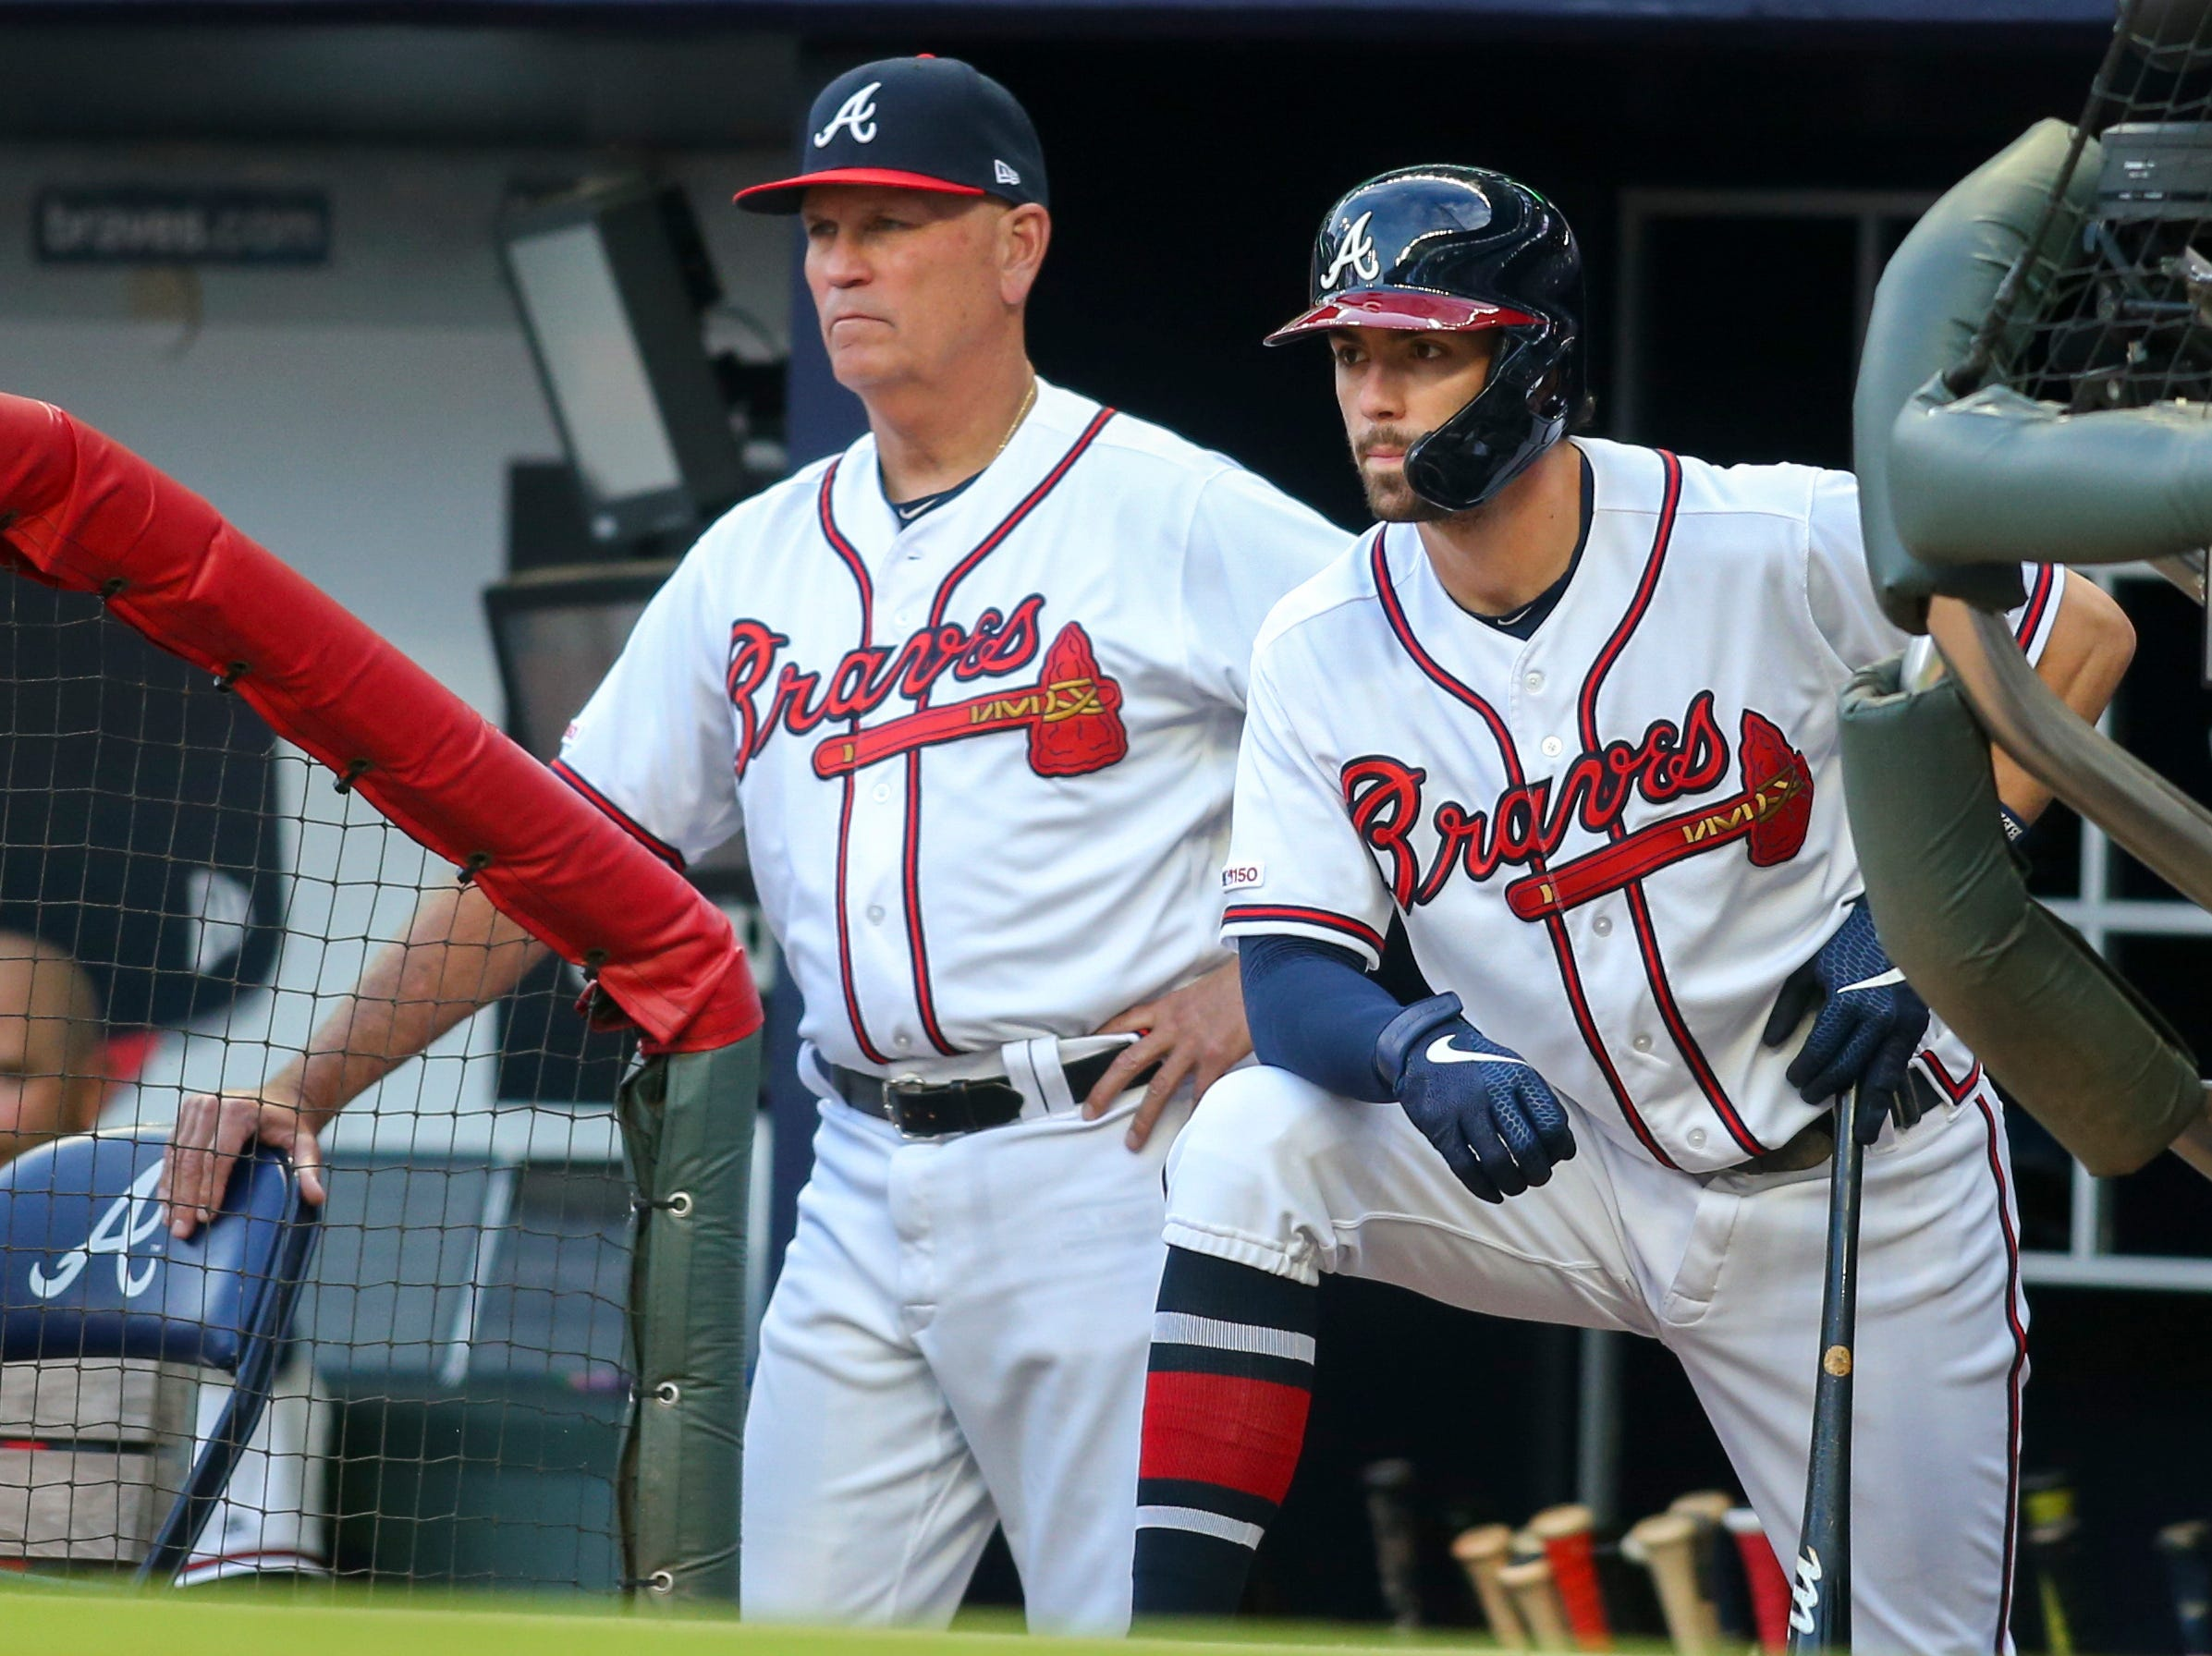 Apr 17, 2019; Atlanta, GA, USA; Atlanta Braves manager Brian Snitker (left) and shortstop Dansby Swanson (right) look on from the dugout against the Arizona Diamondbacks in the first inning at SunTrust Park. Mandatory Credit: Brett Davis-USA TODAY Sports